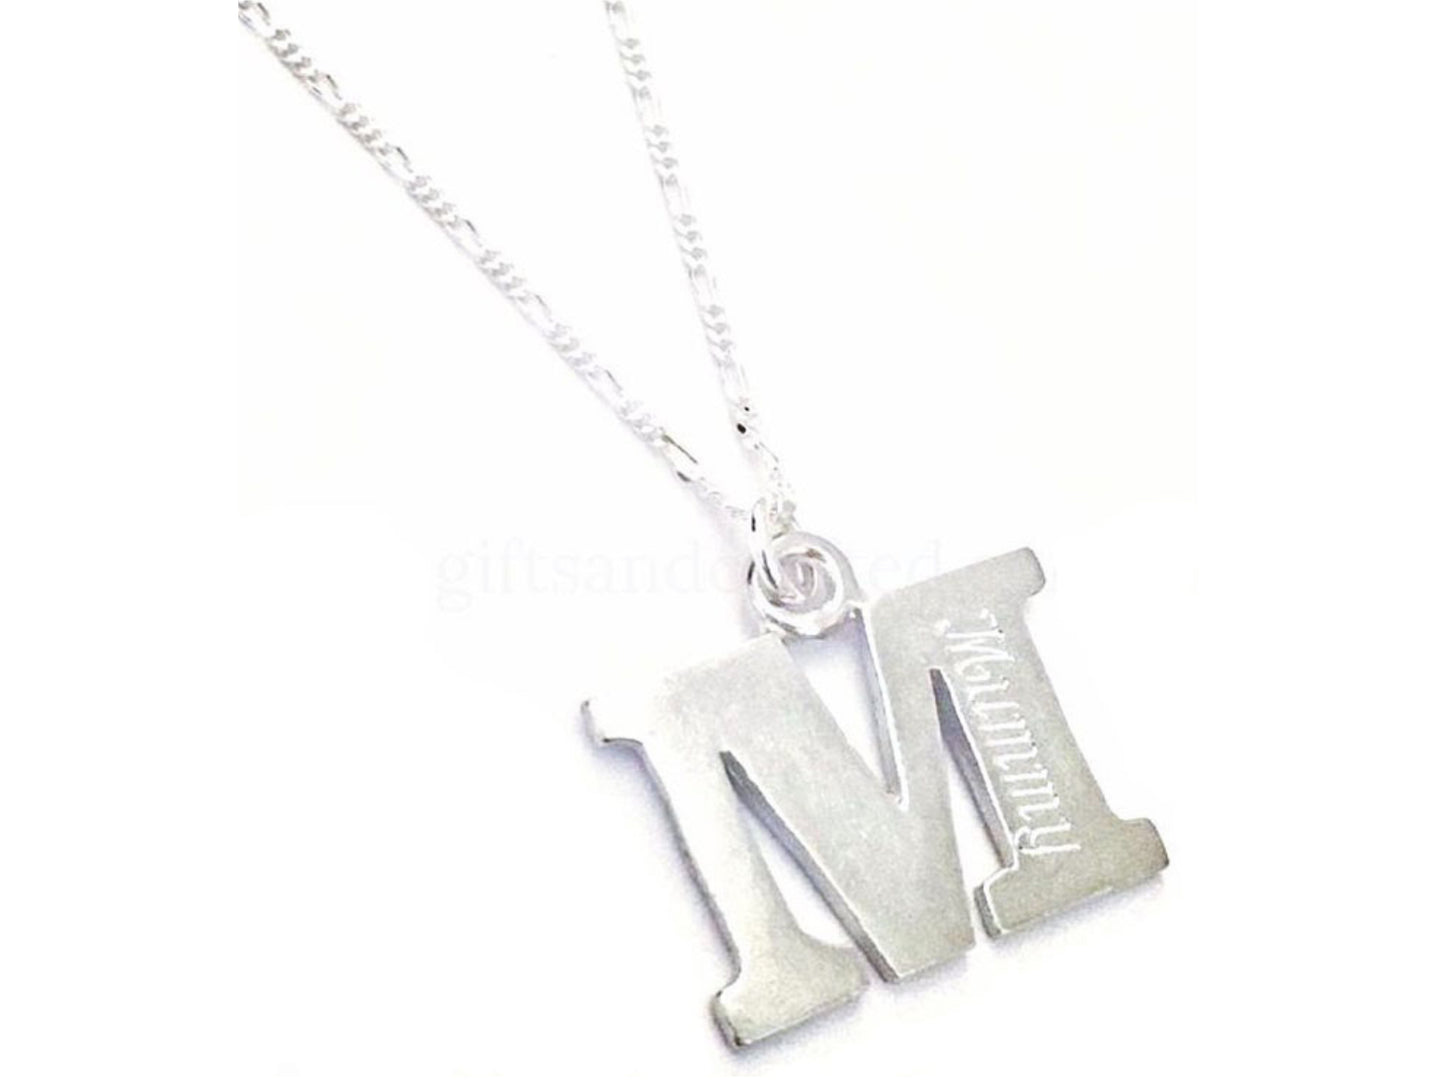 handmade personalised engraved sterling silver initial pendant with necklace